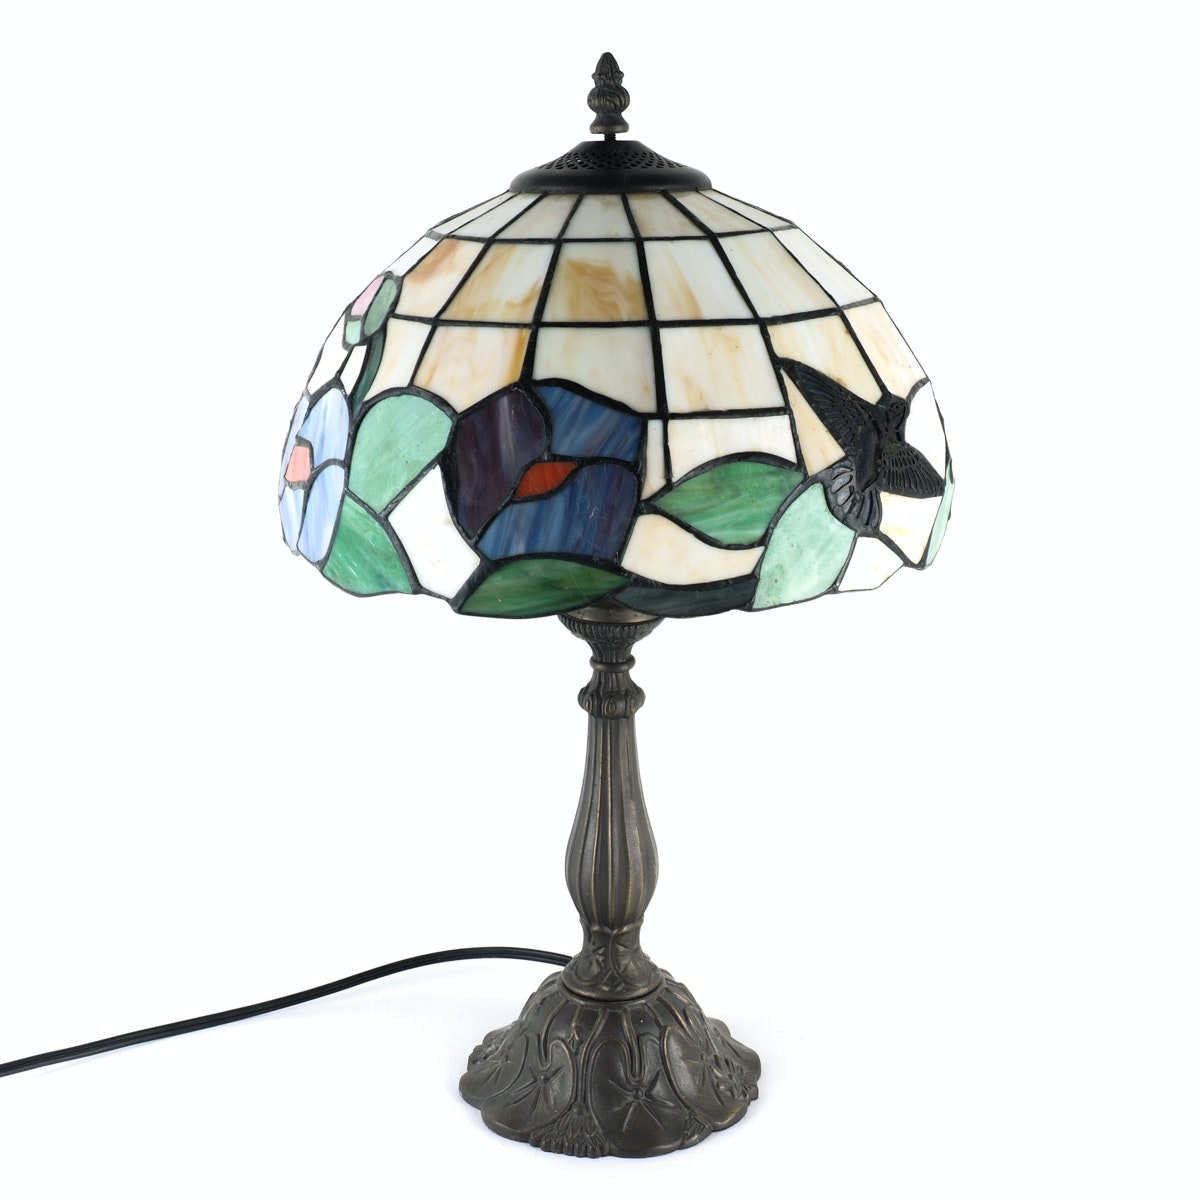 Tiffany Style Table Lamp With Floral Motif Shade And Decorative